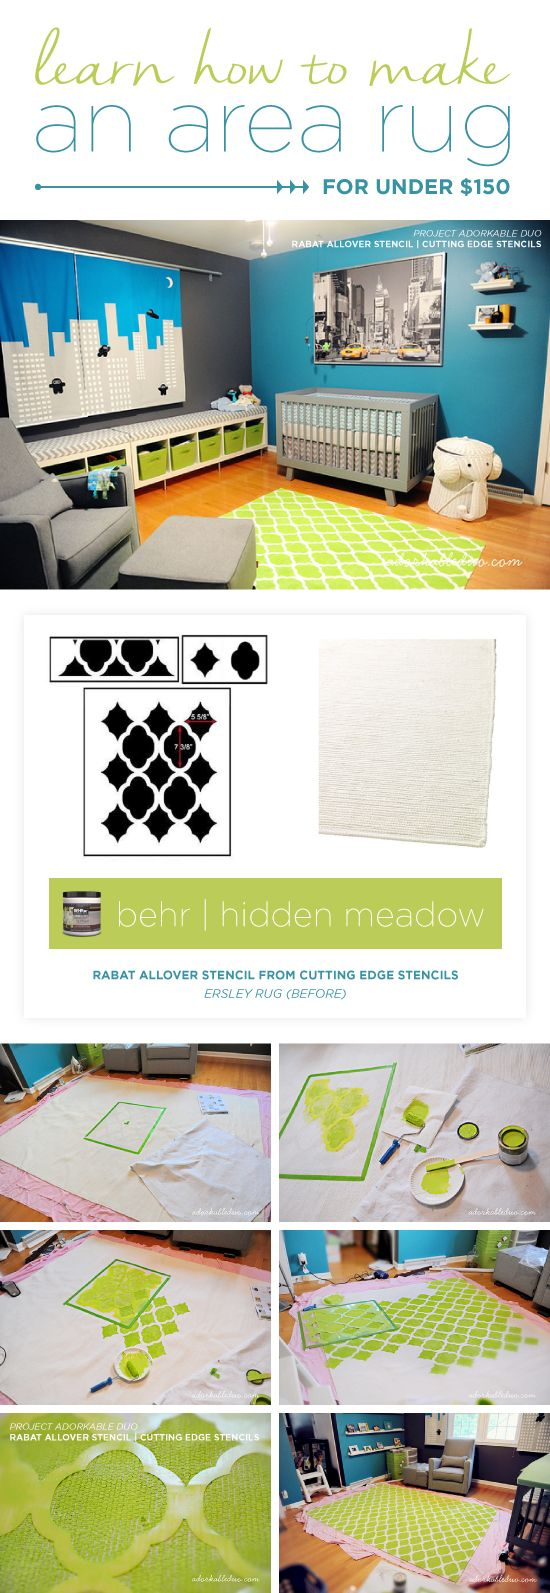 125 best boys room stencil decor images on pinterest stencil cutting edge stencils shares how to stencil a diy area rug for a nursery using the amipublicfo Choice Image